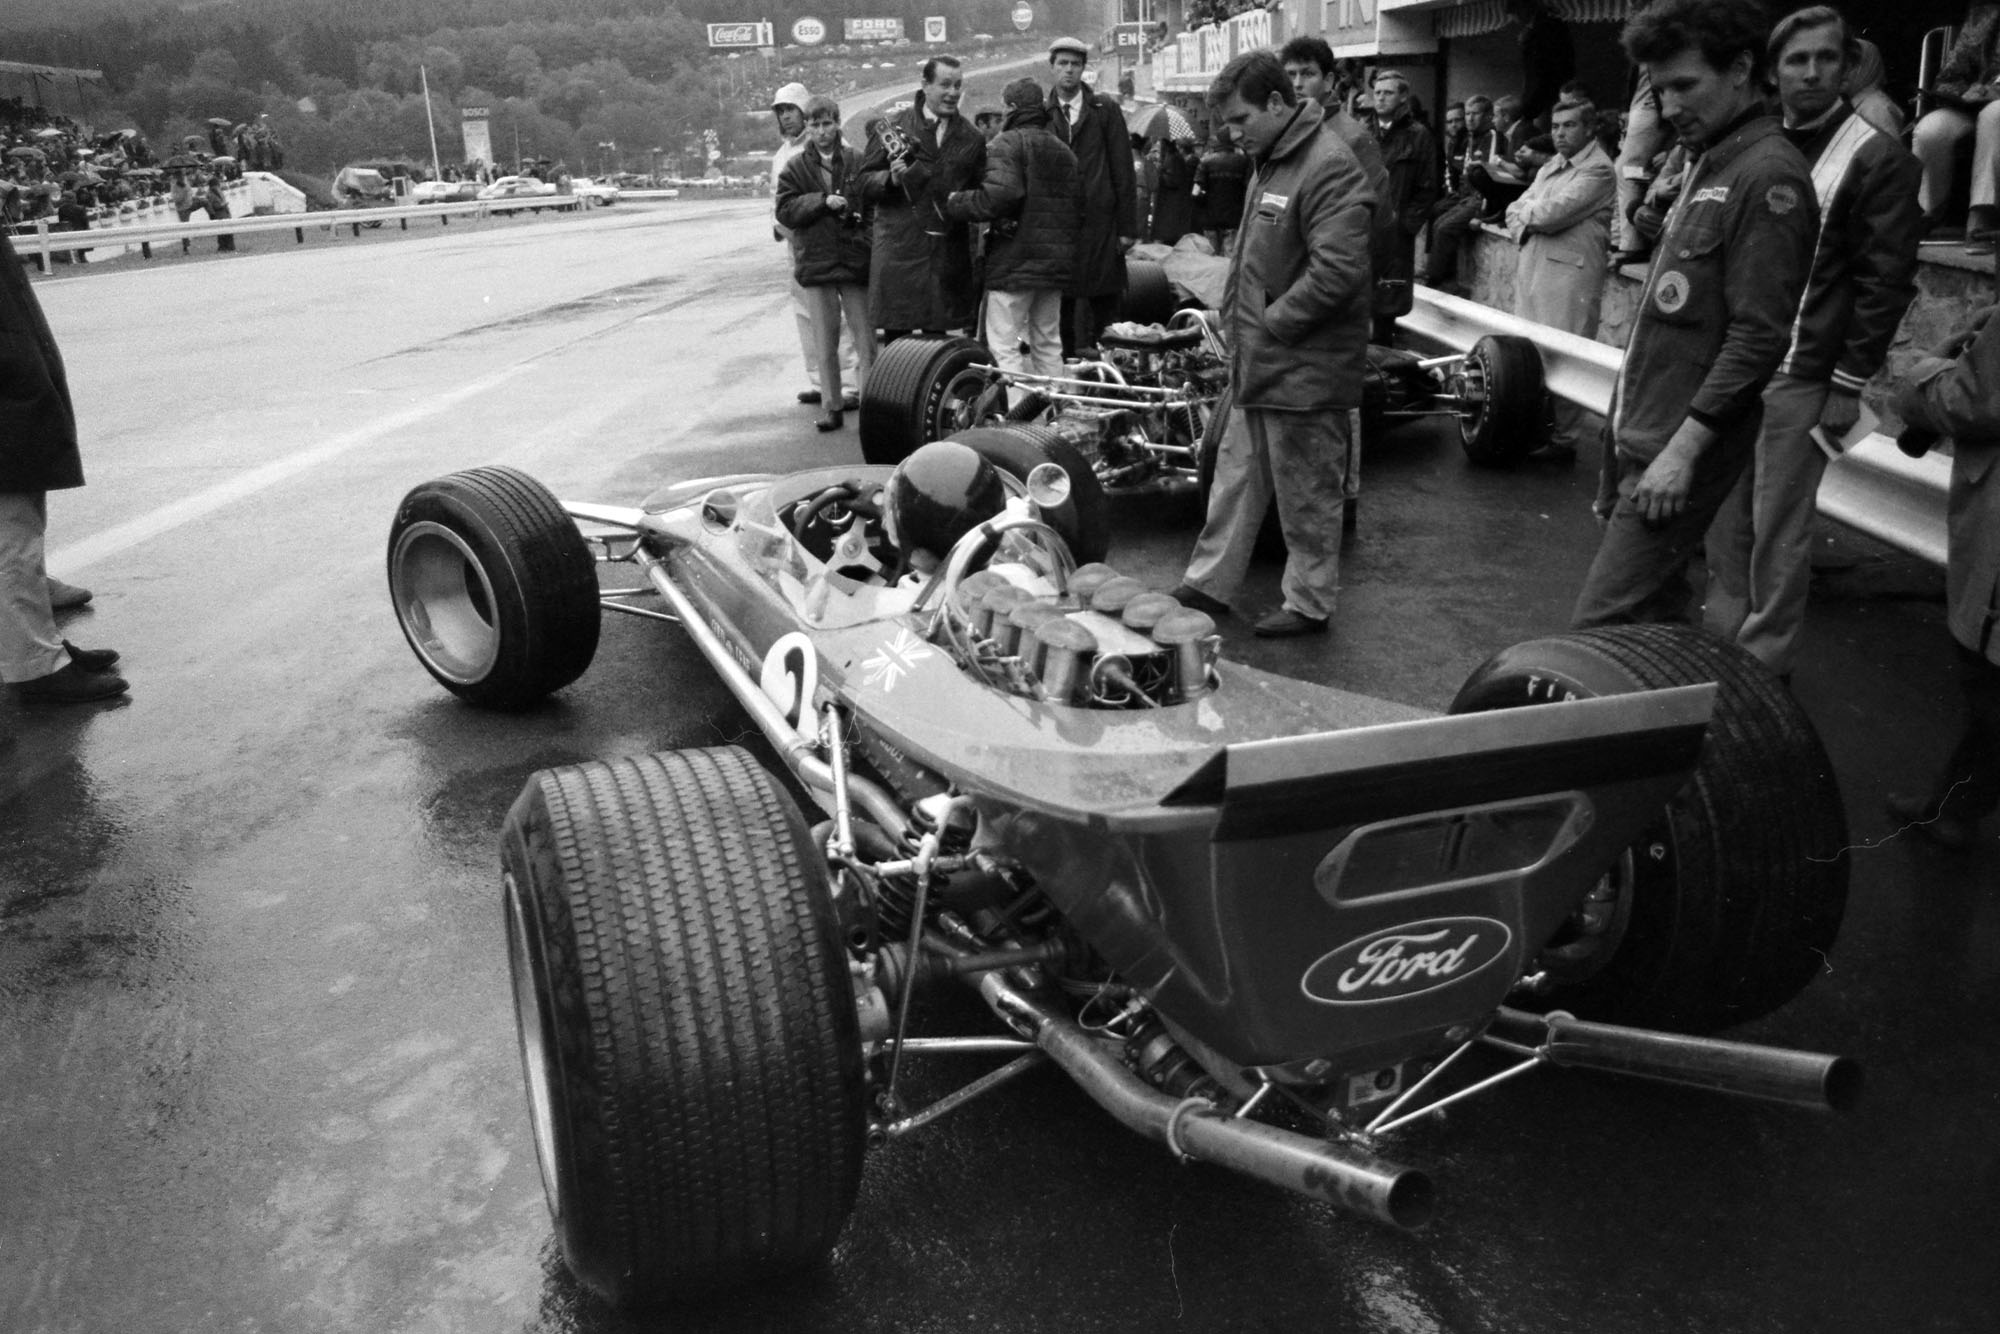 Jackie Oliver, Lotus 49B Ford, in the pit lane.